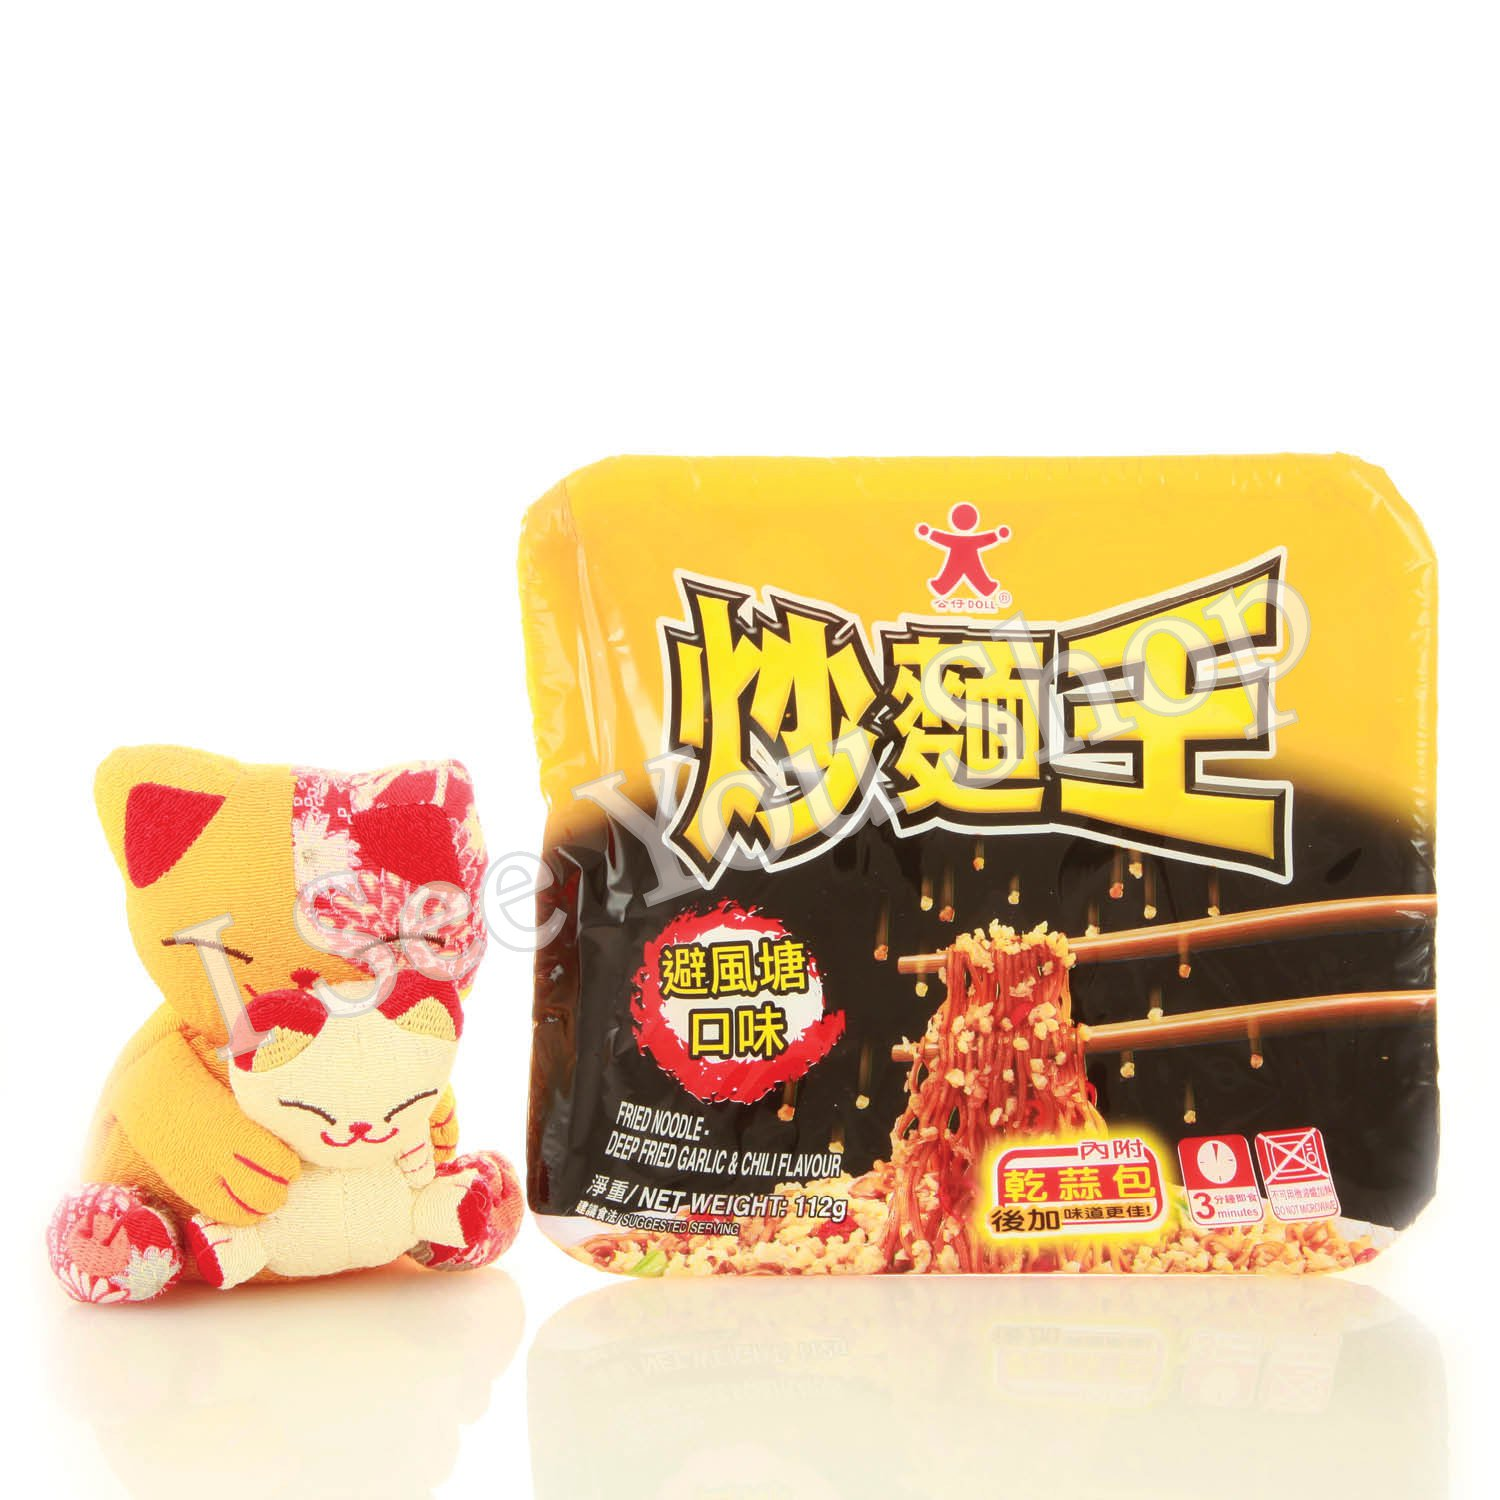 ���麵� �風��� 112g Doll Fried Noodle Deep Friend Garlic & Chili Flavour 112g